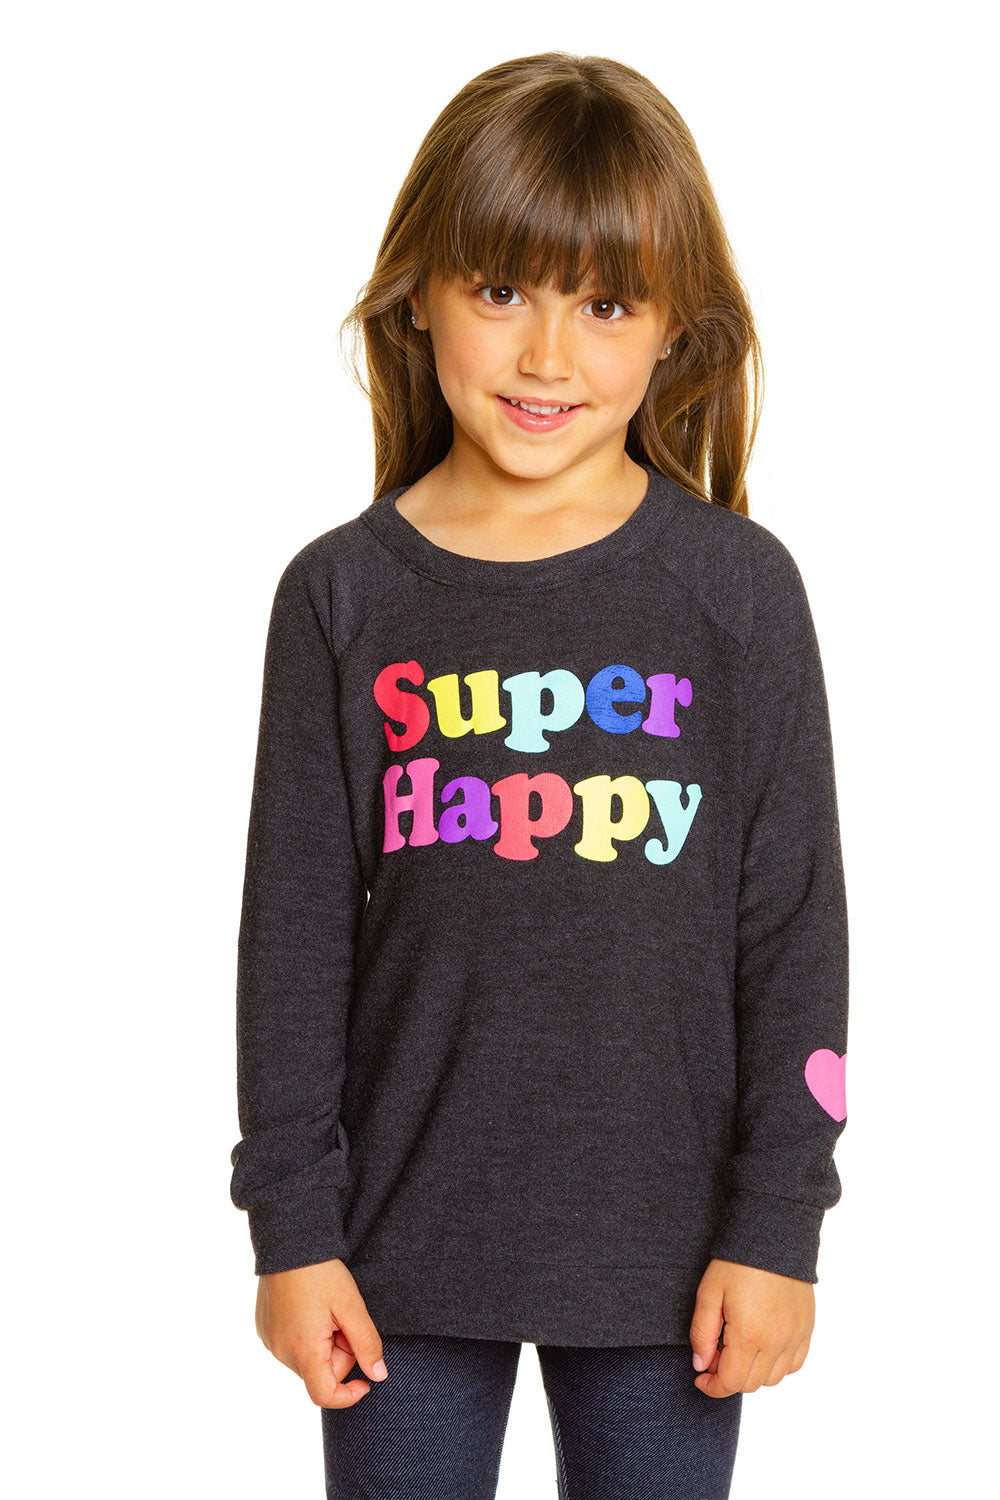 Super Happy GIRLS chaserbrand4.myshopify.com